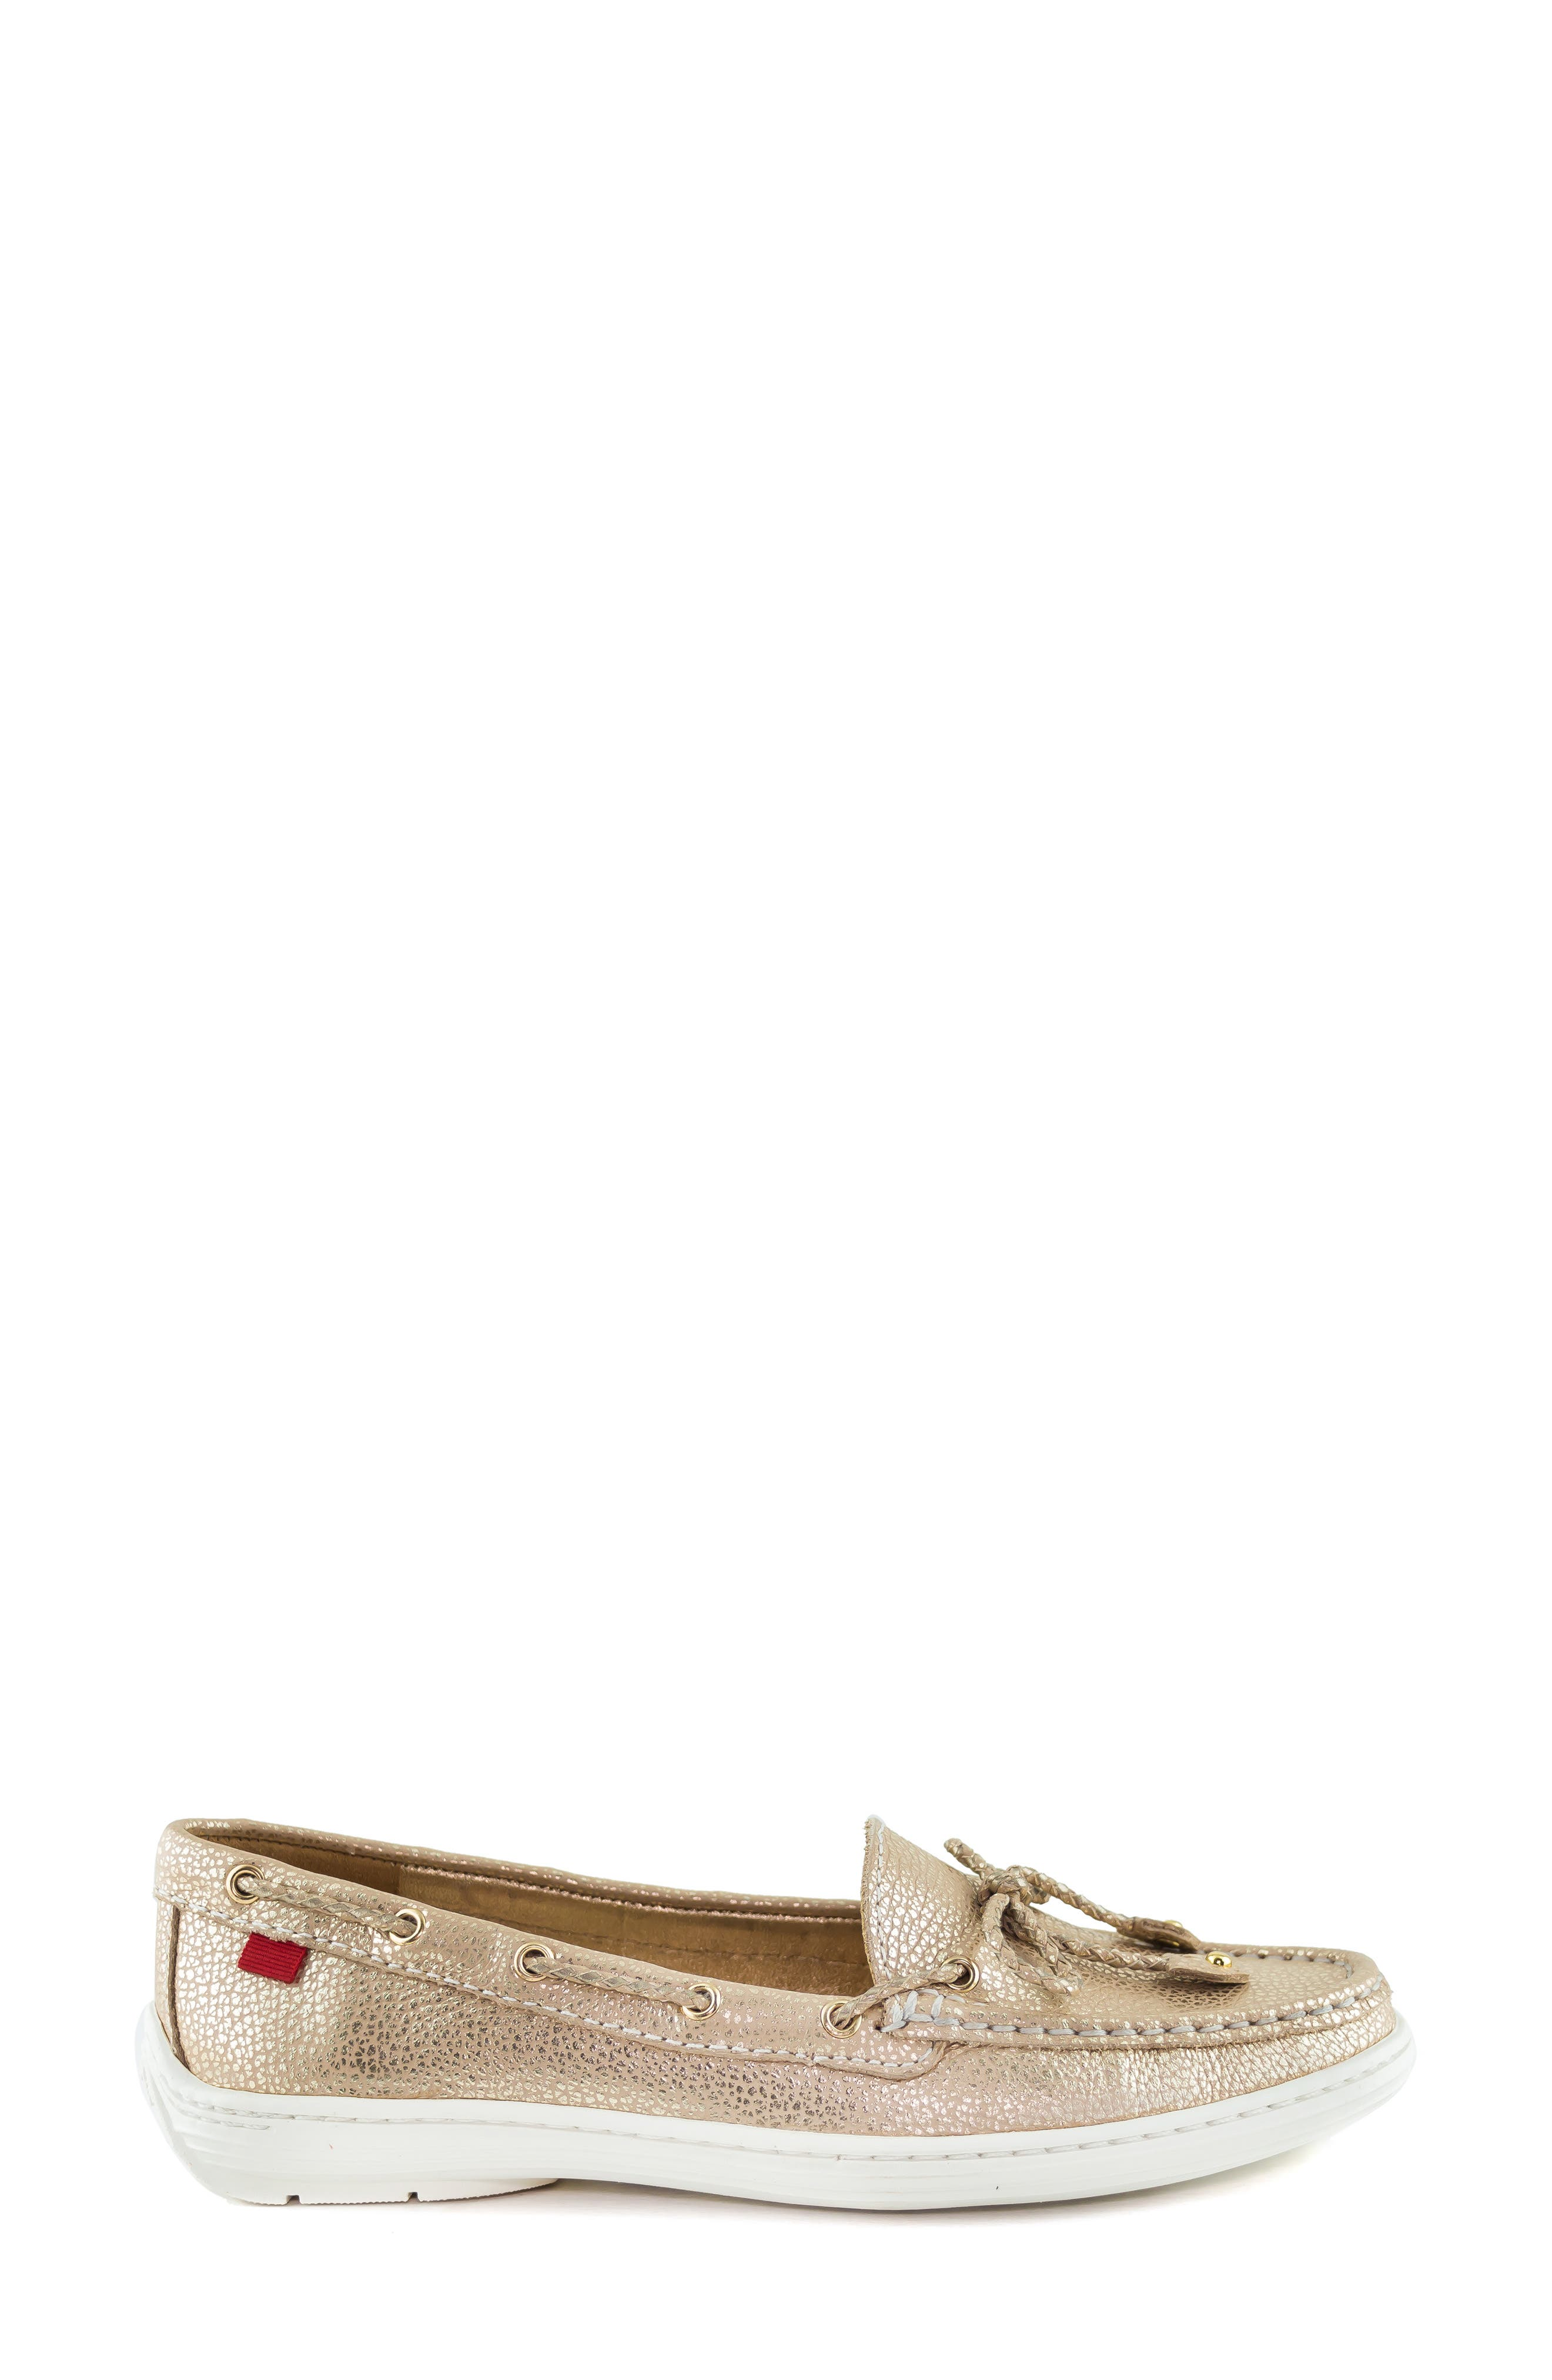 MARC JOSEPH NEW YORK, Pacific Loafer, Alternate thumbnail 3, color, GOLD LEATHER